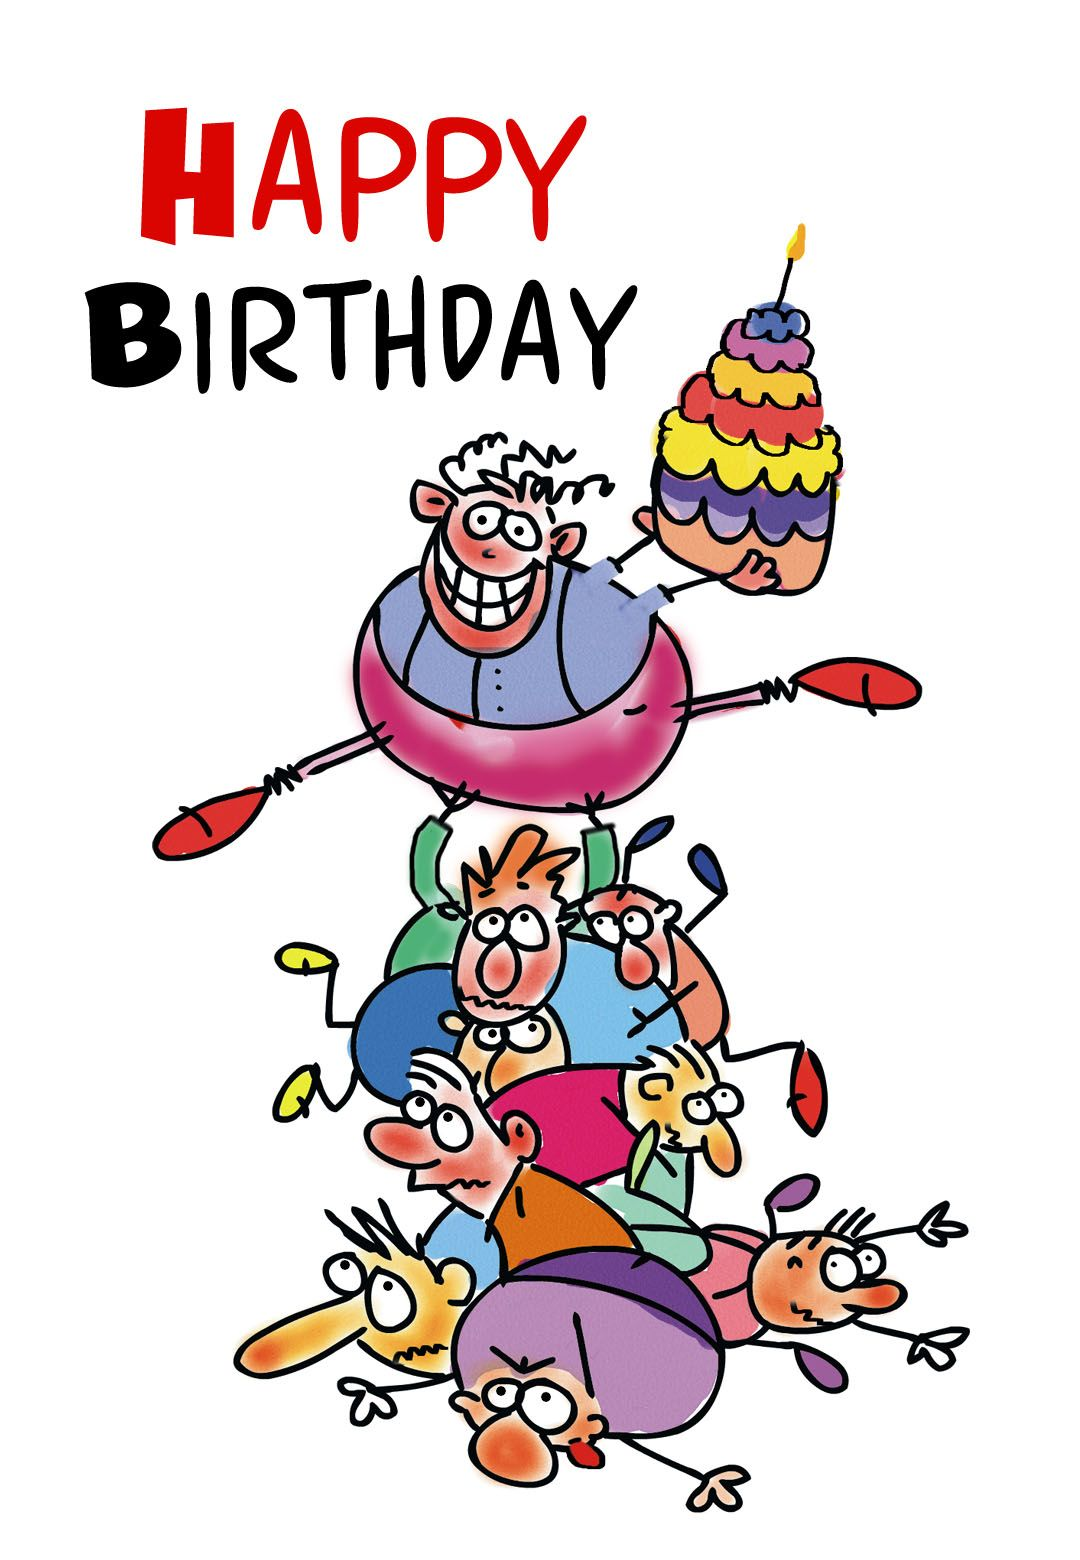 Funny Birthday Wishes For Friend Pinterest